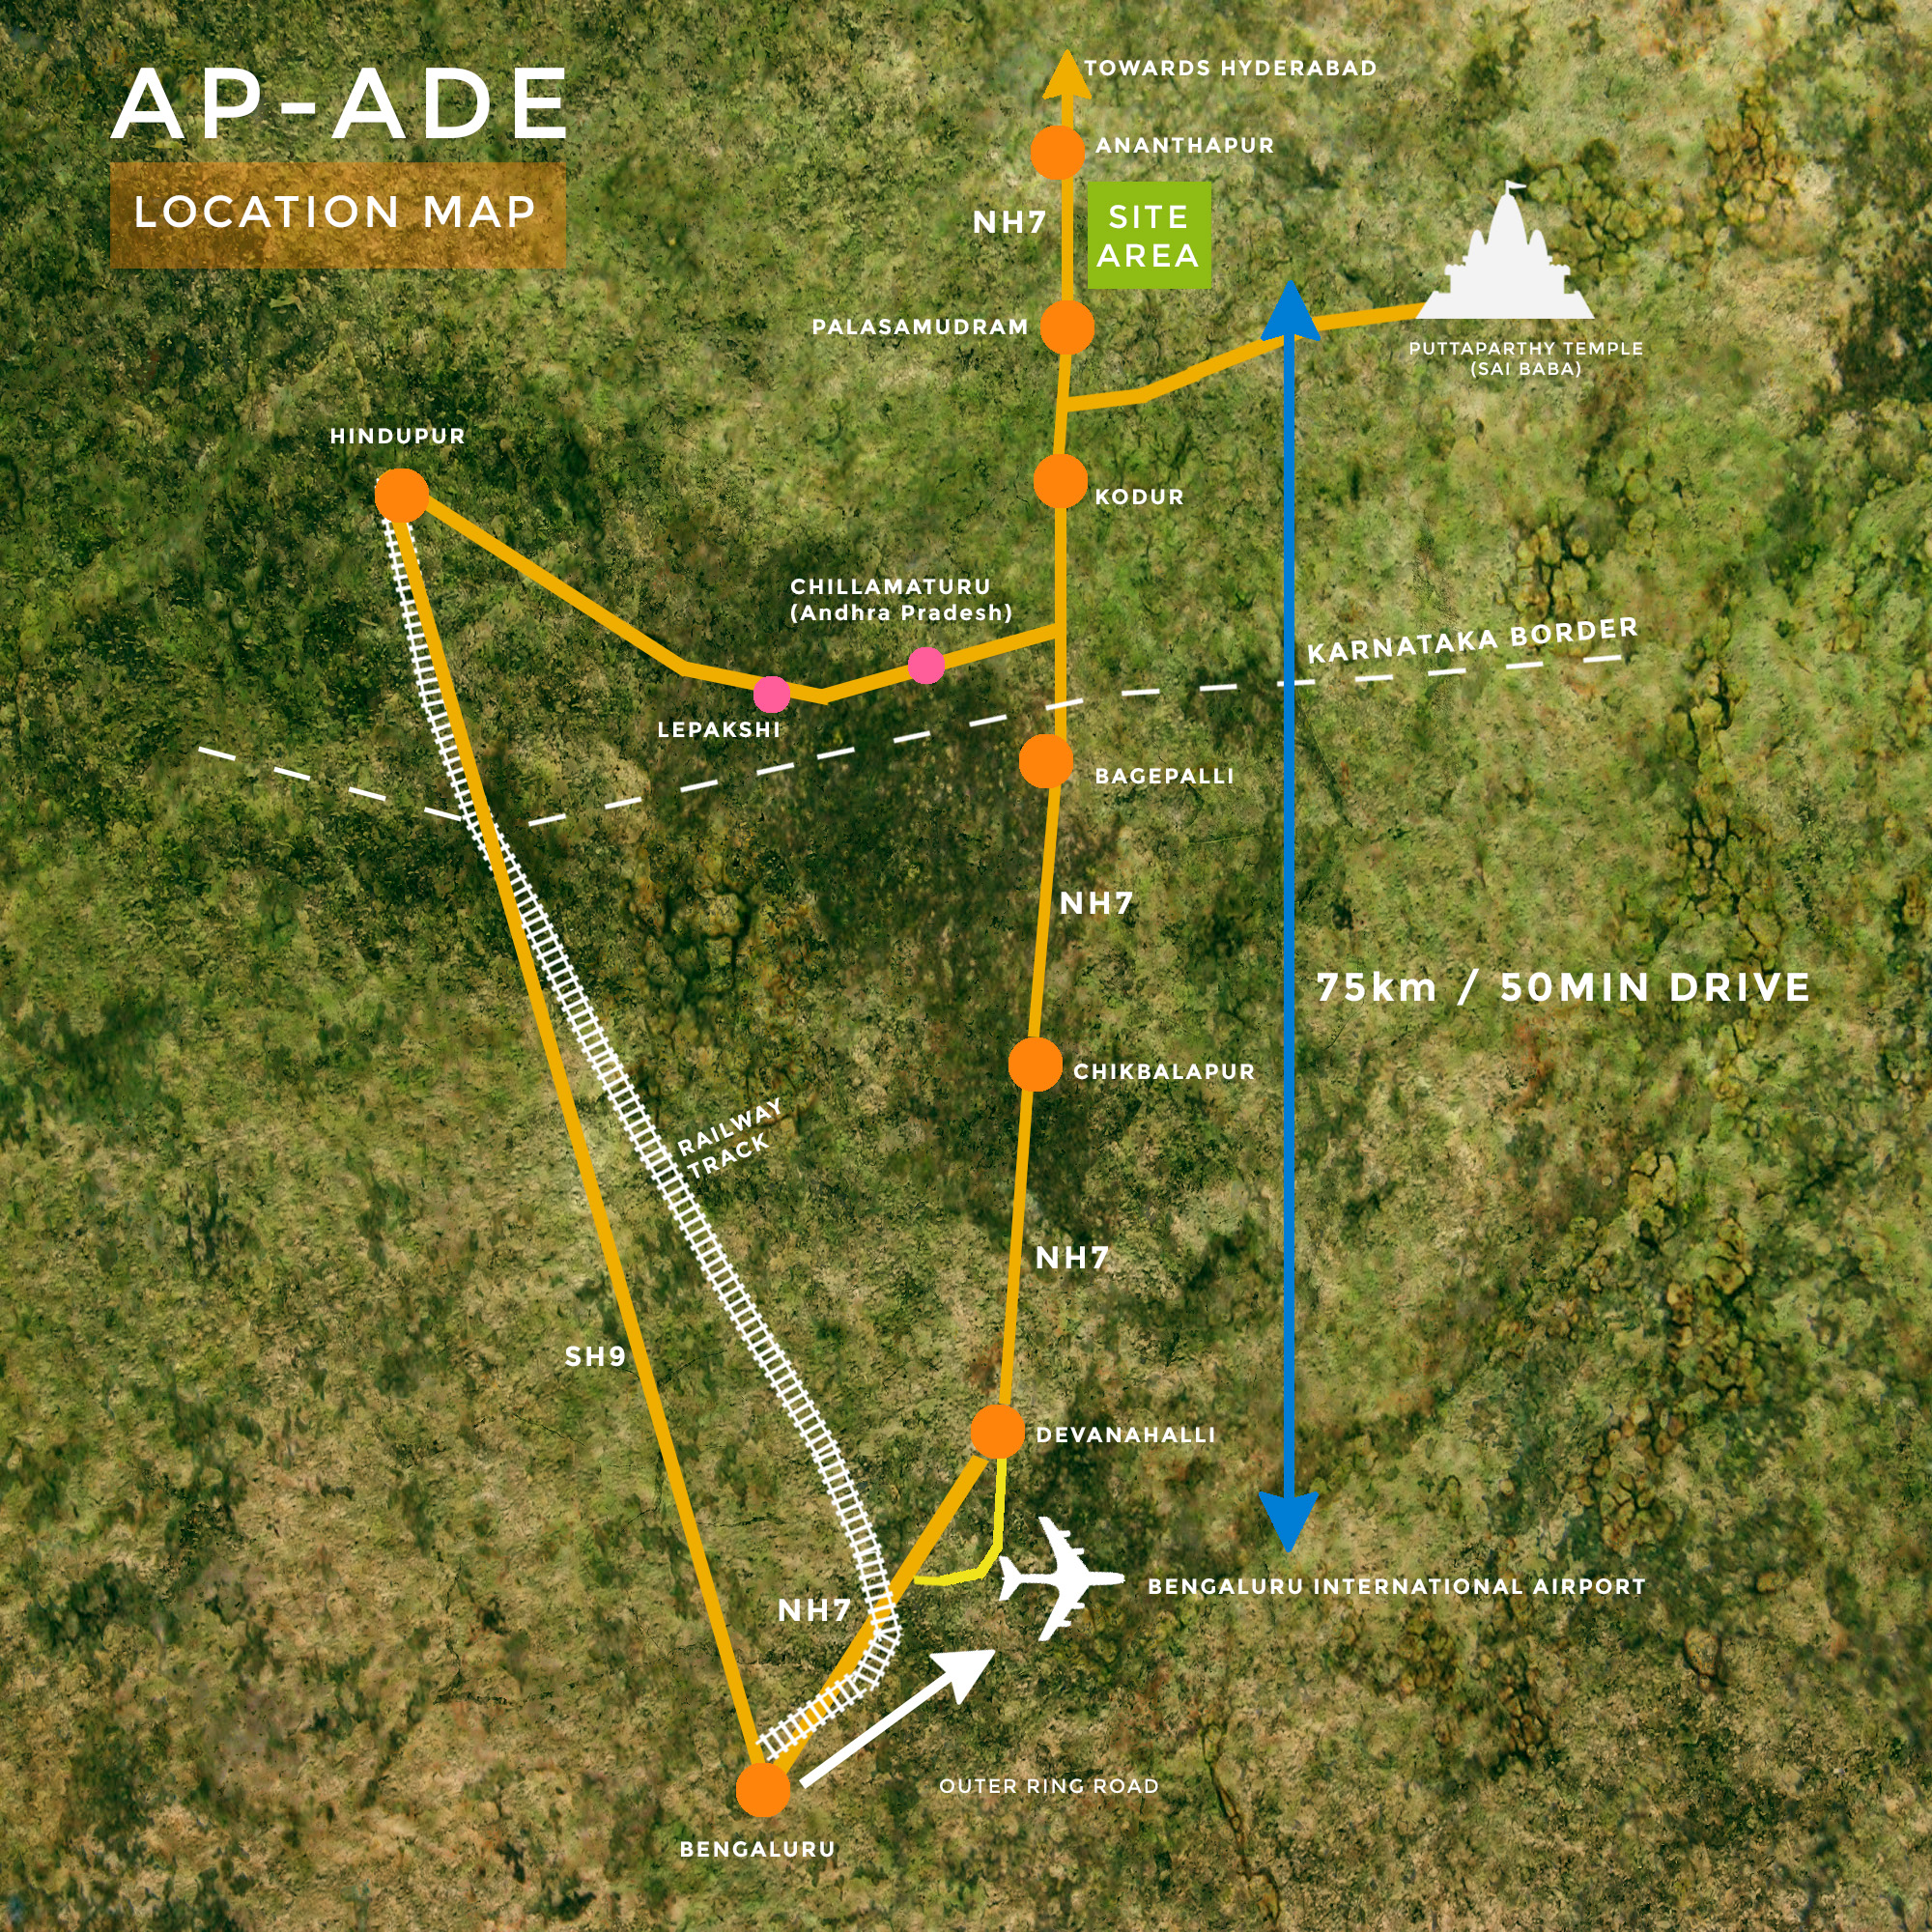 Andhra Pradesh Aerospace & Defence and Electronics Park (AP-ADE)